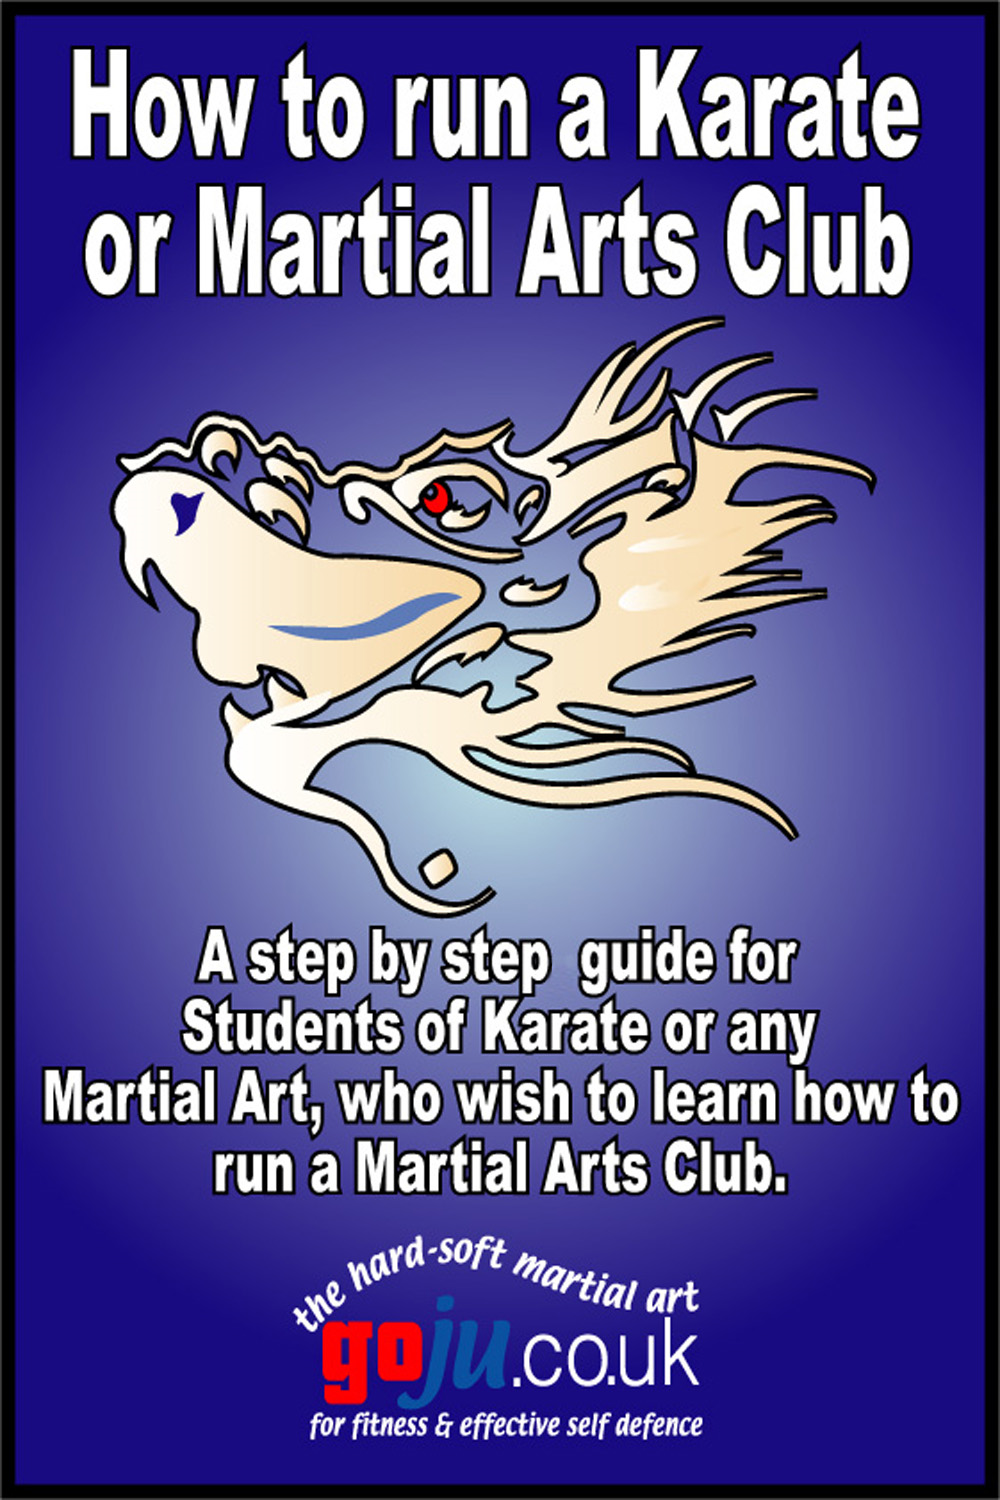 How to Run a Karate Club